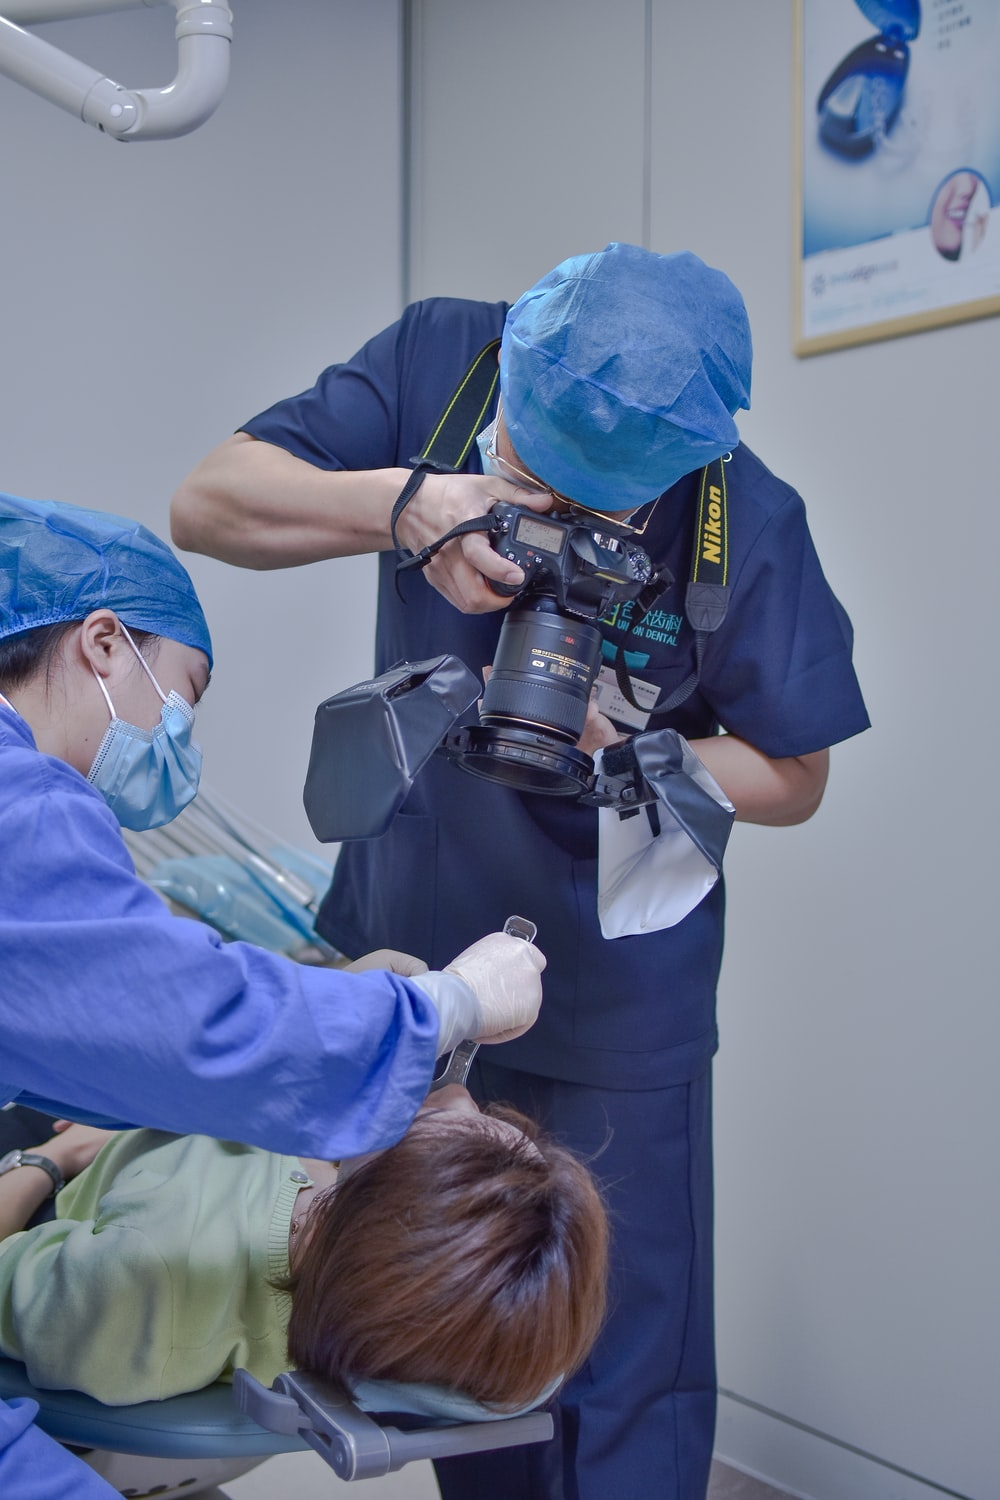 man in blue scrub suit holding black and silver dslr camera